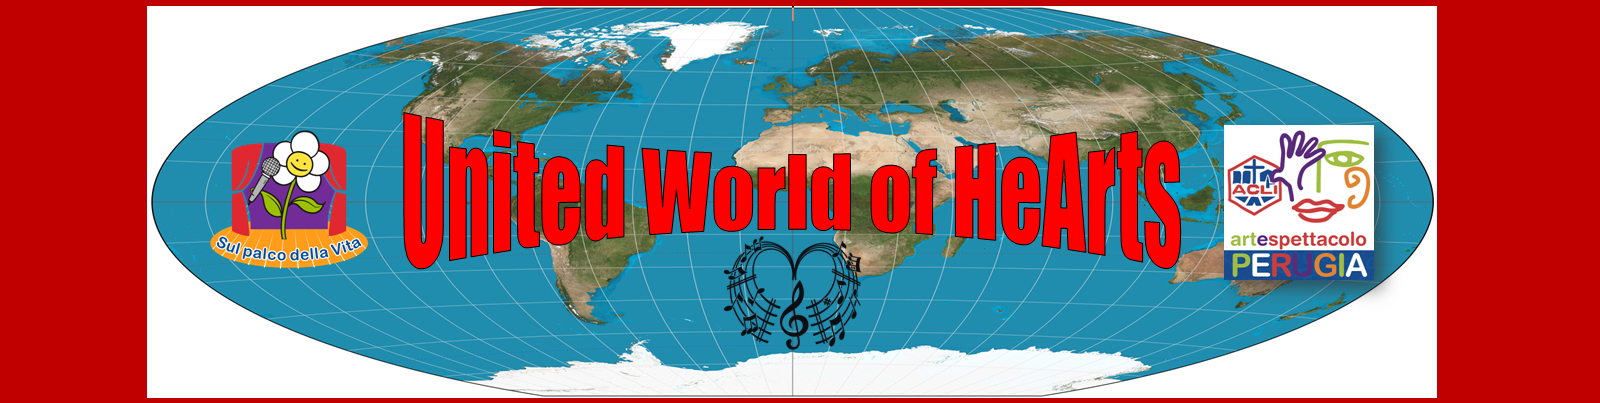 United World of HeArts